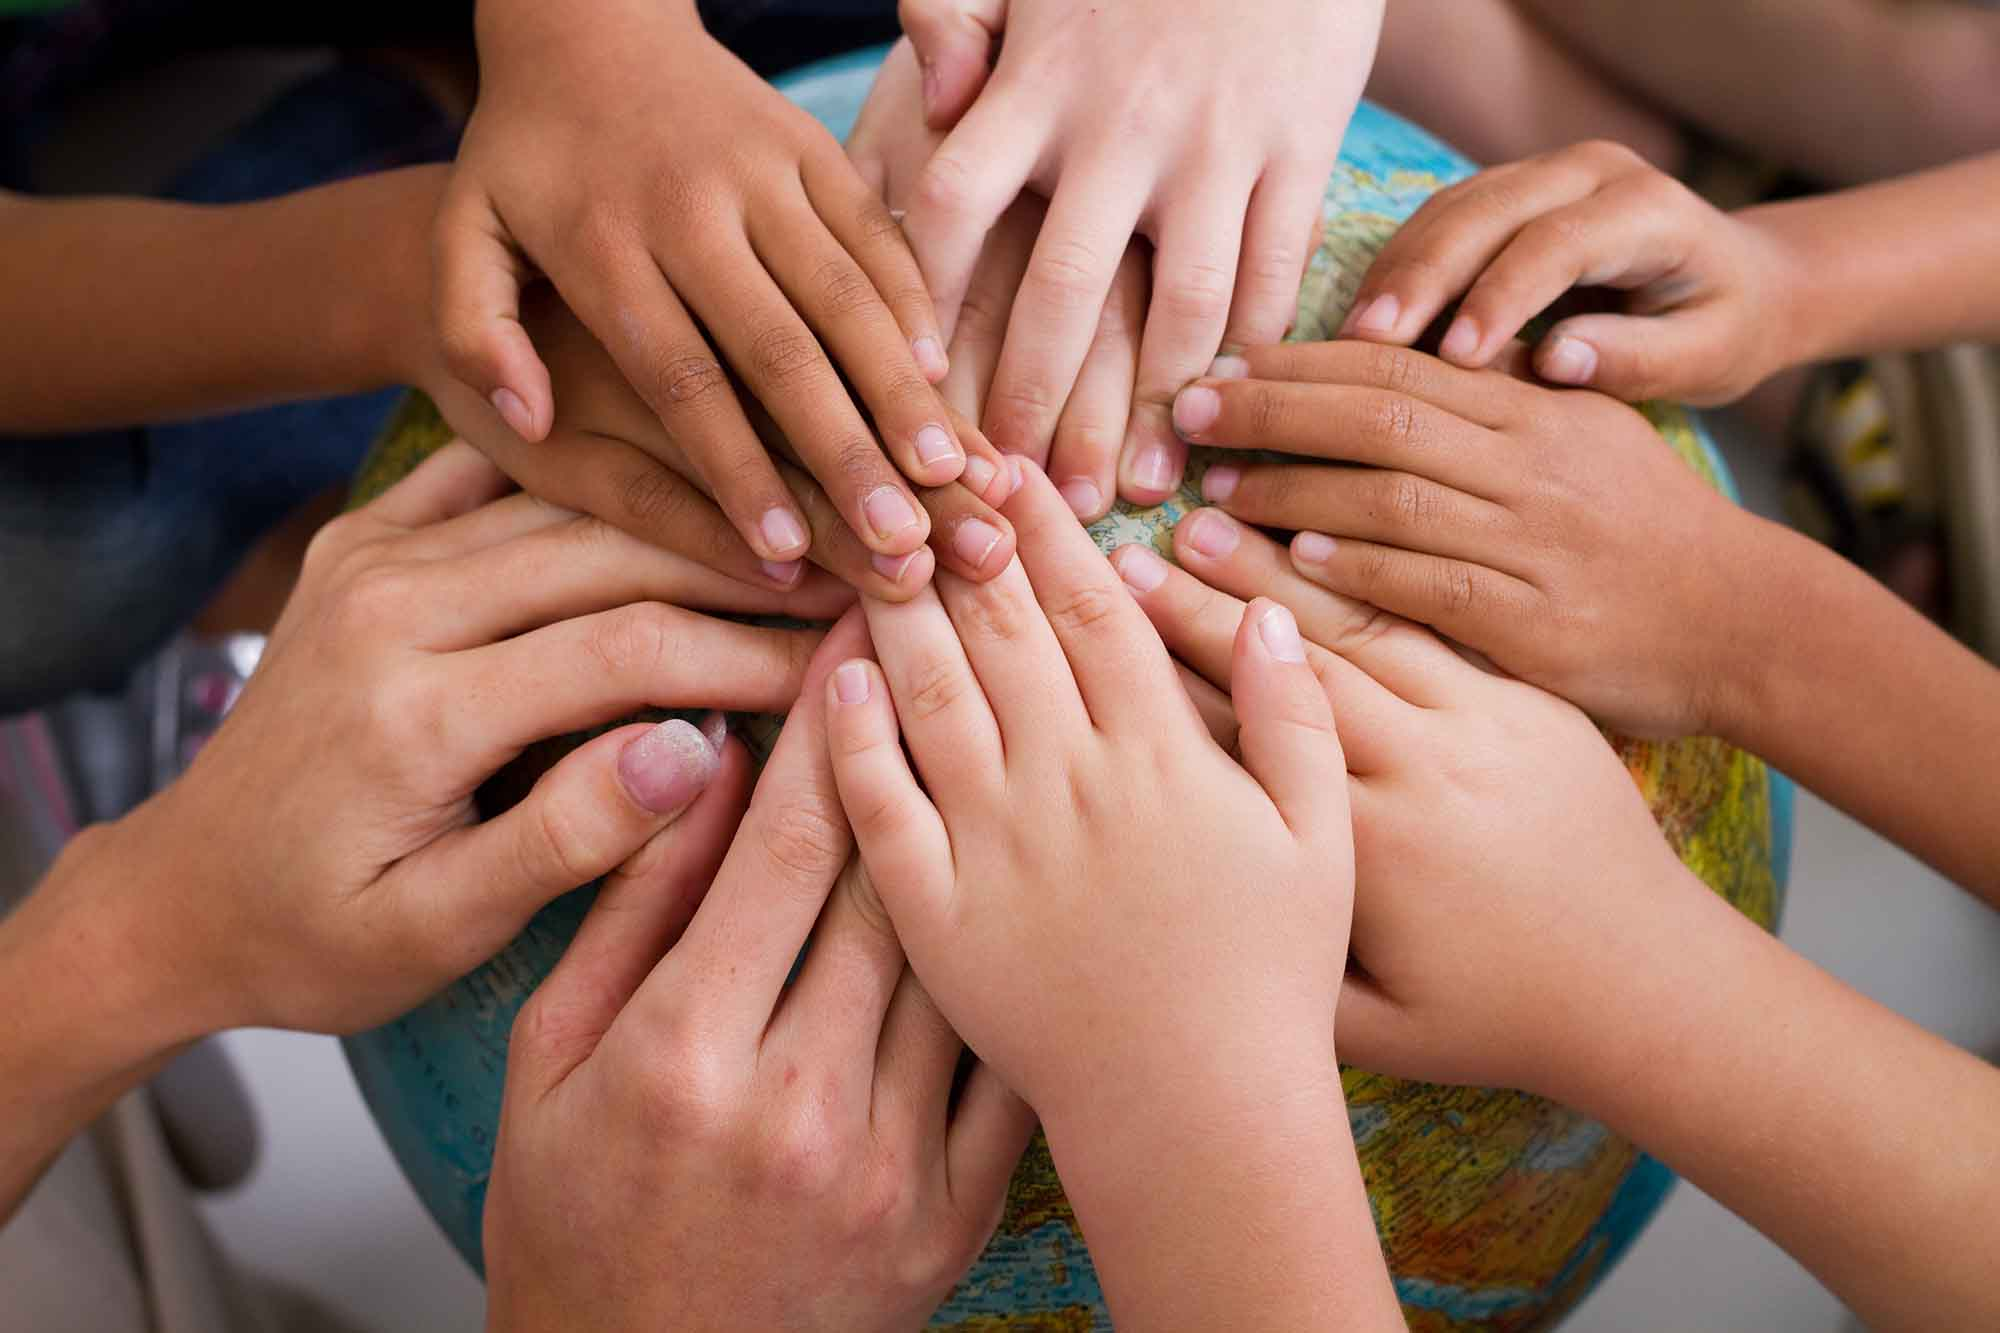 Joint Statement of Commitment and Support for Diversity, Equity and Inclusion in Maine Schools